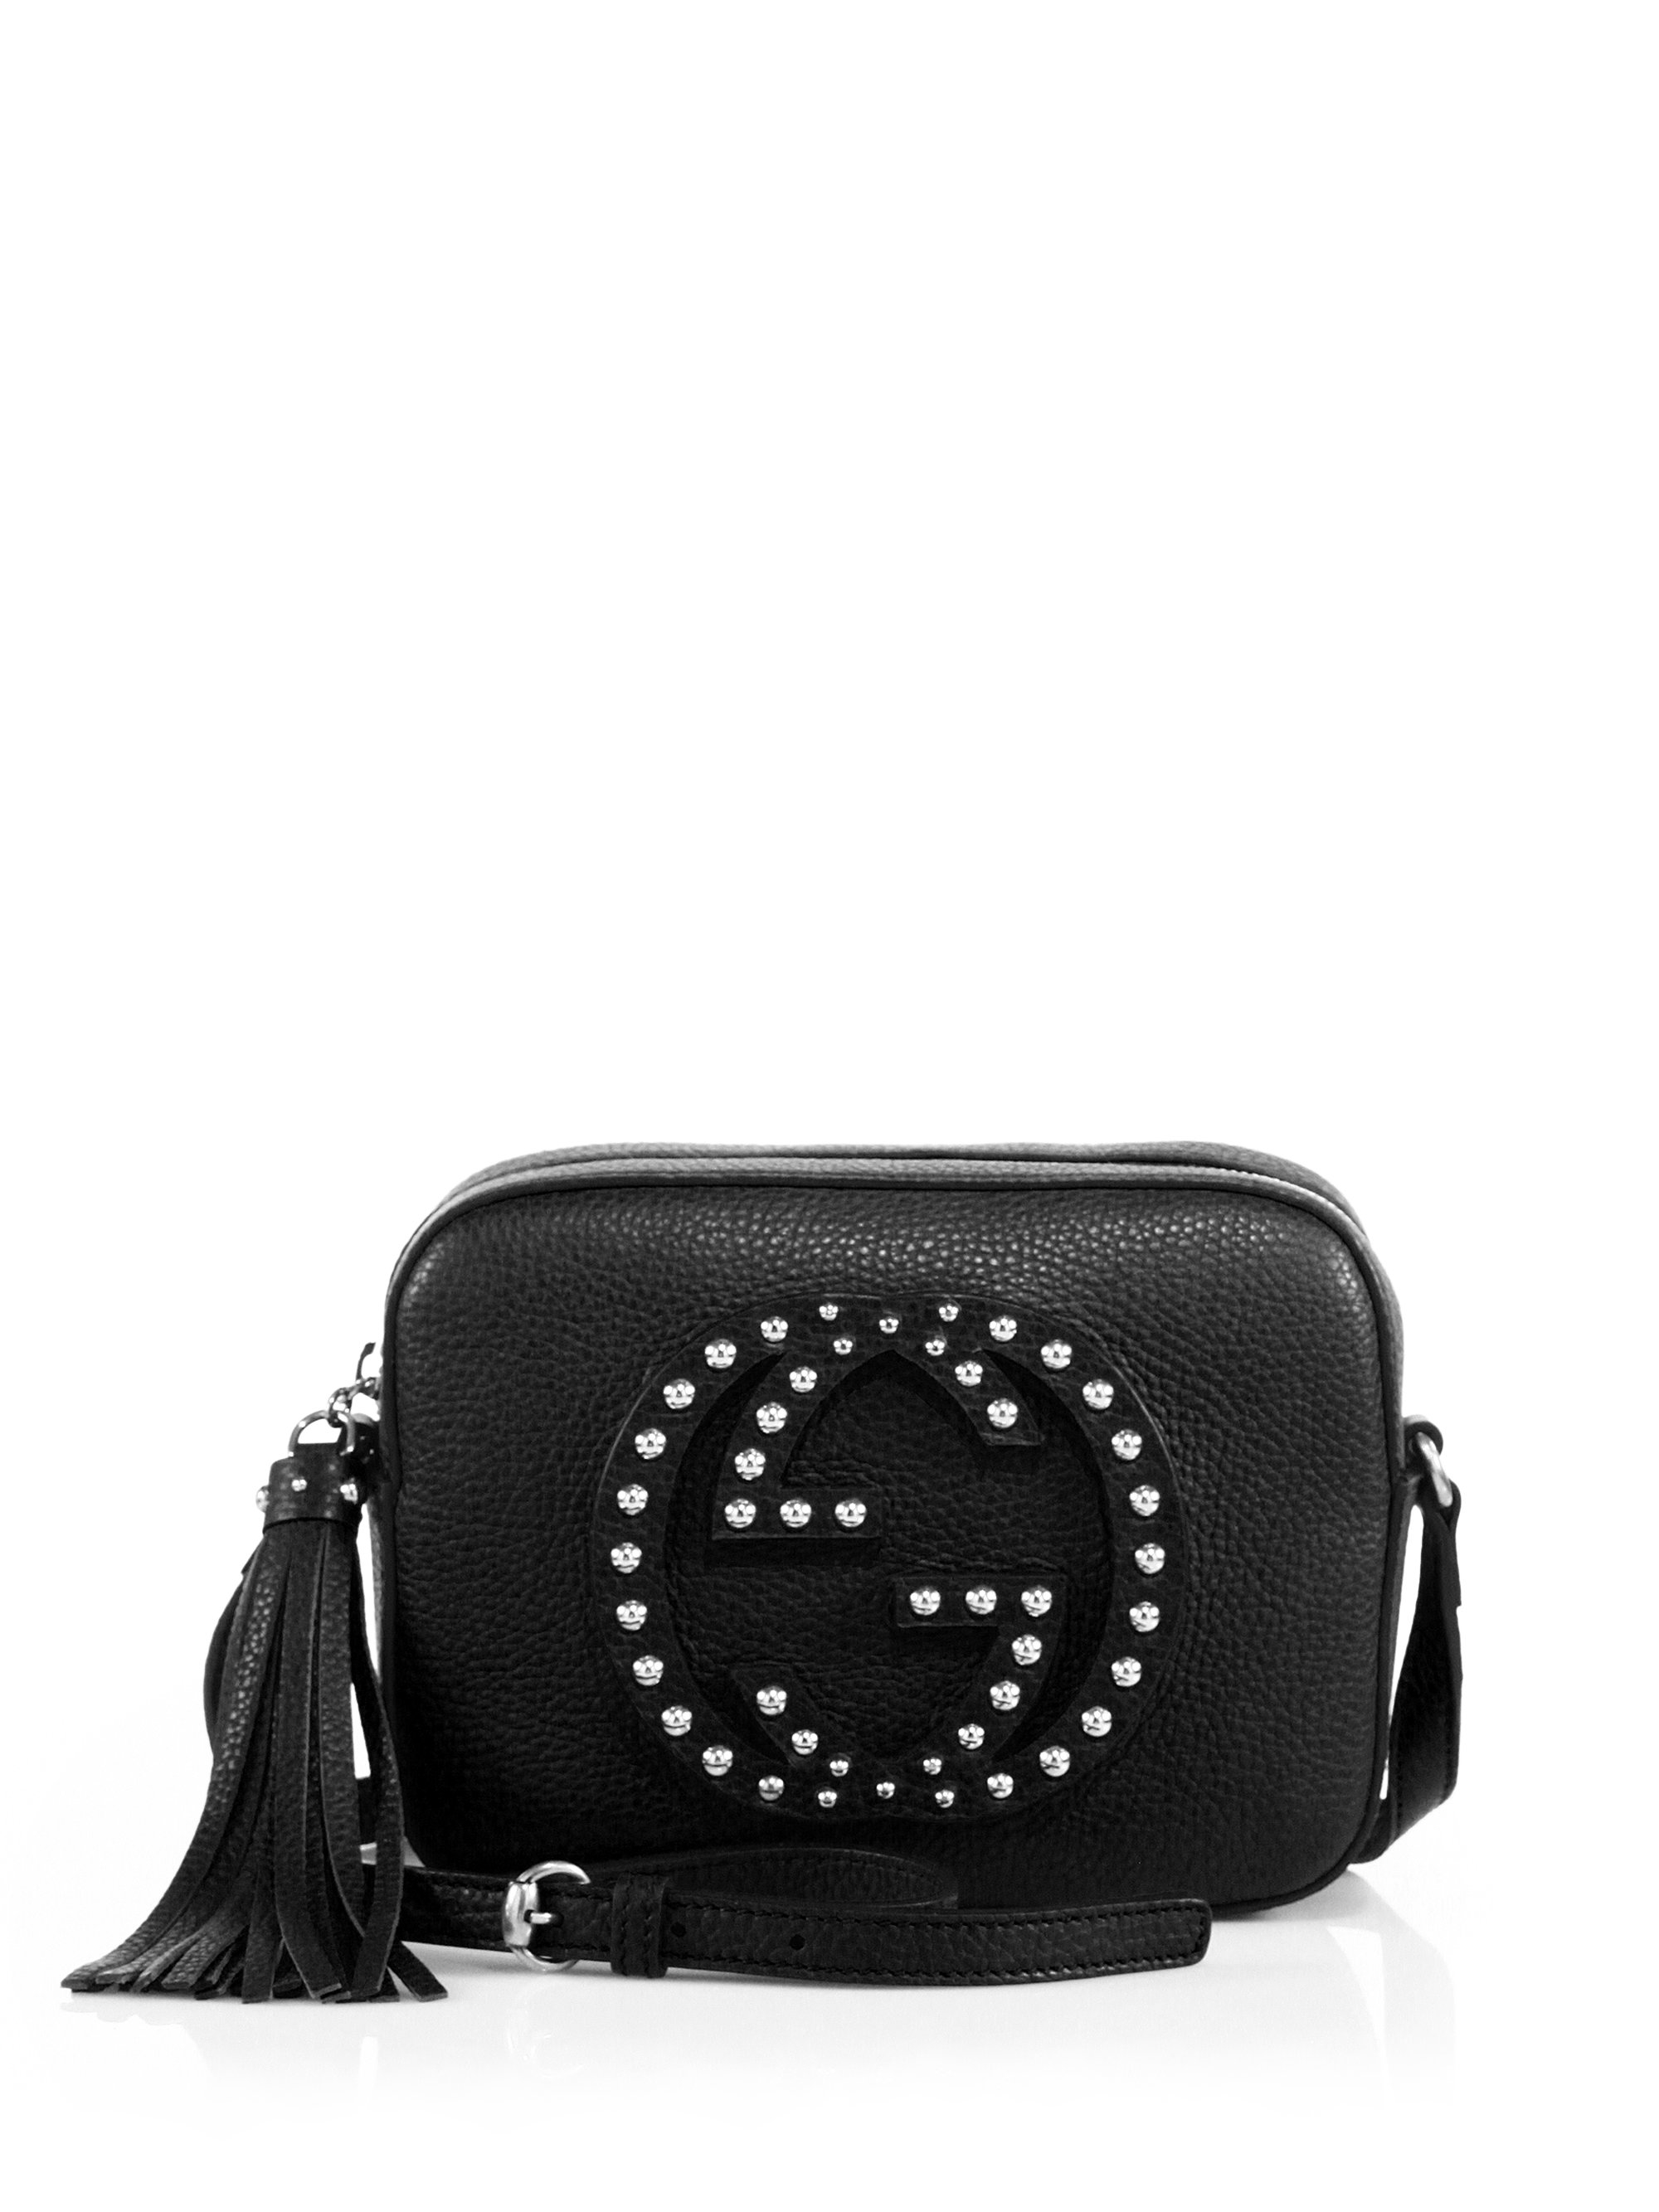 f70dc1143f72f6 Lyst - Gucci Soho Small Studded Leather Disco Bag in Black